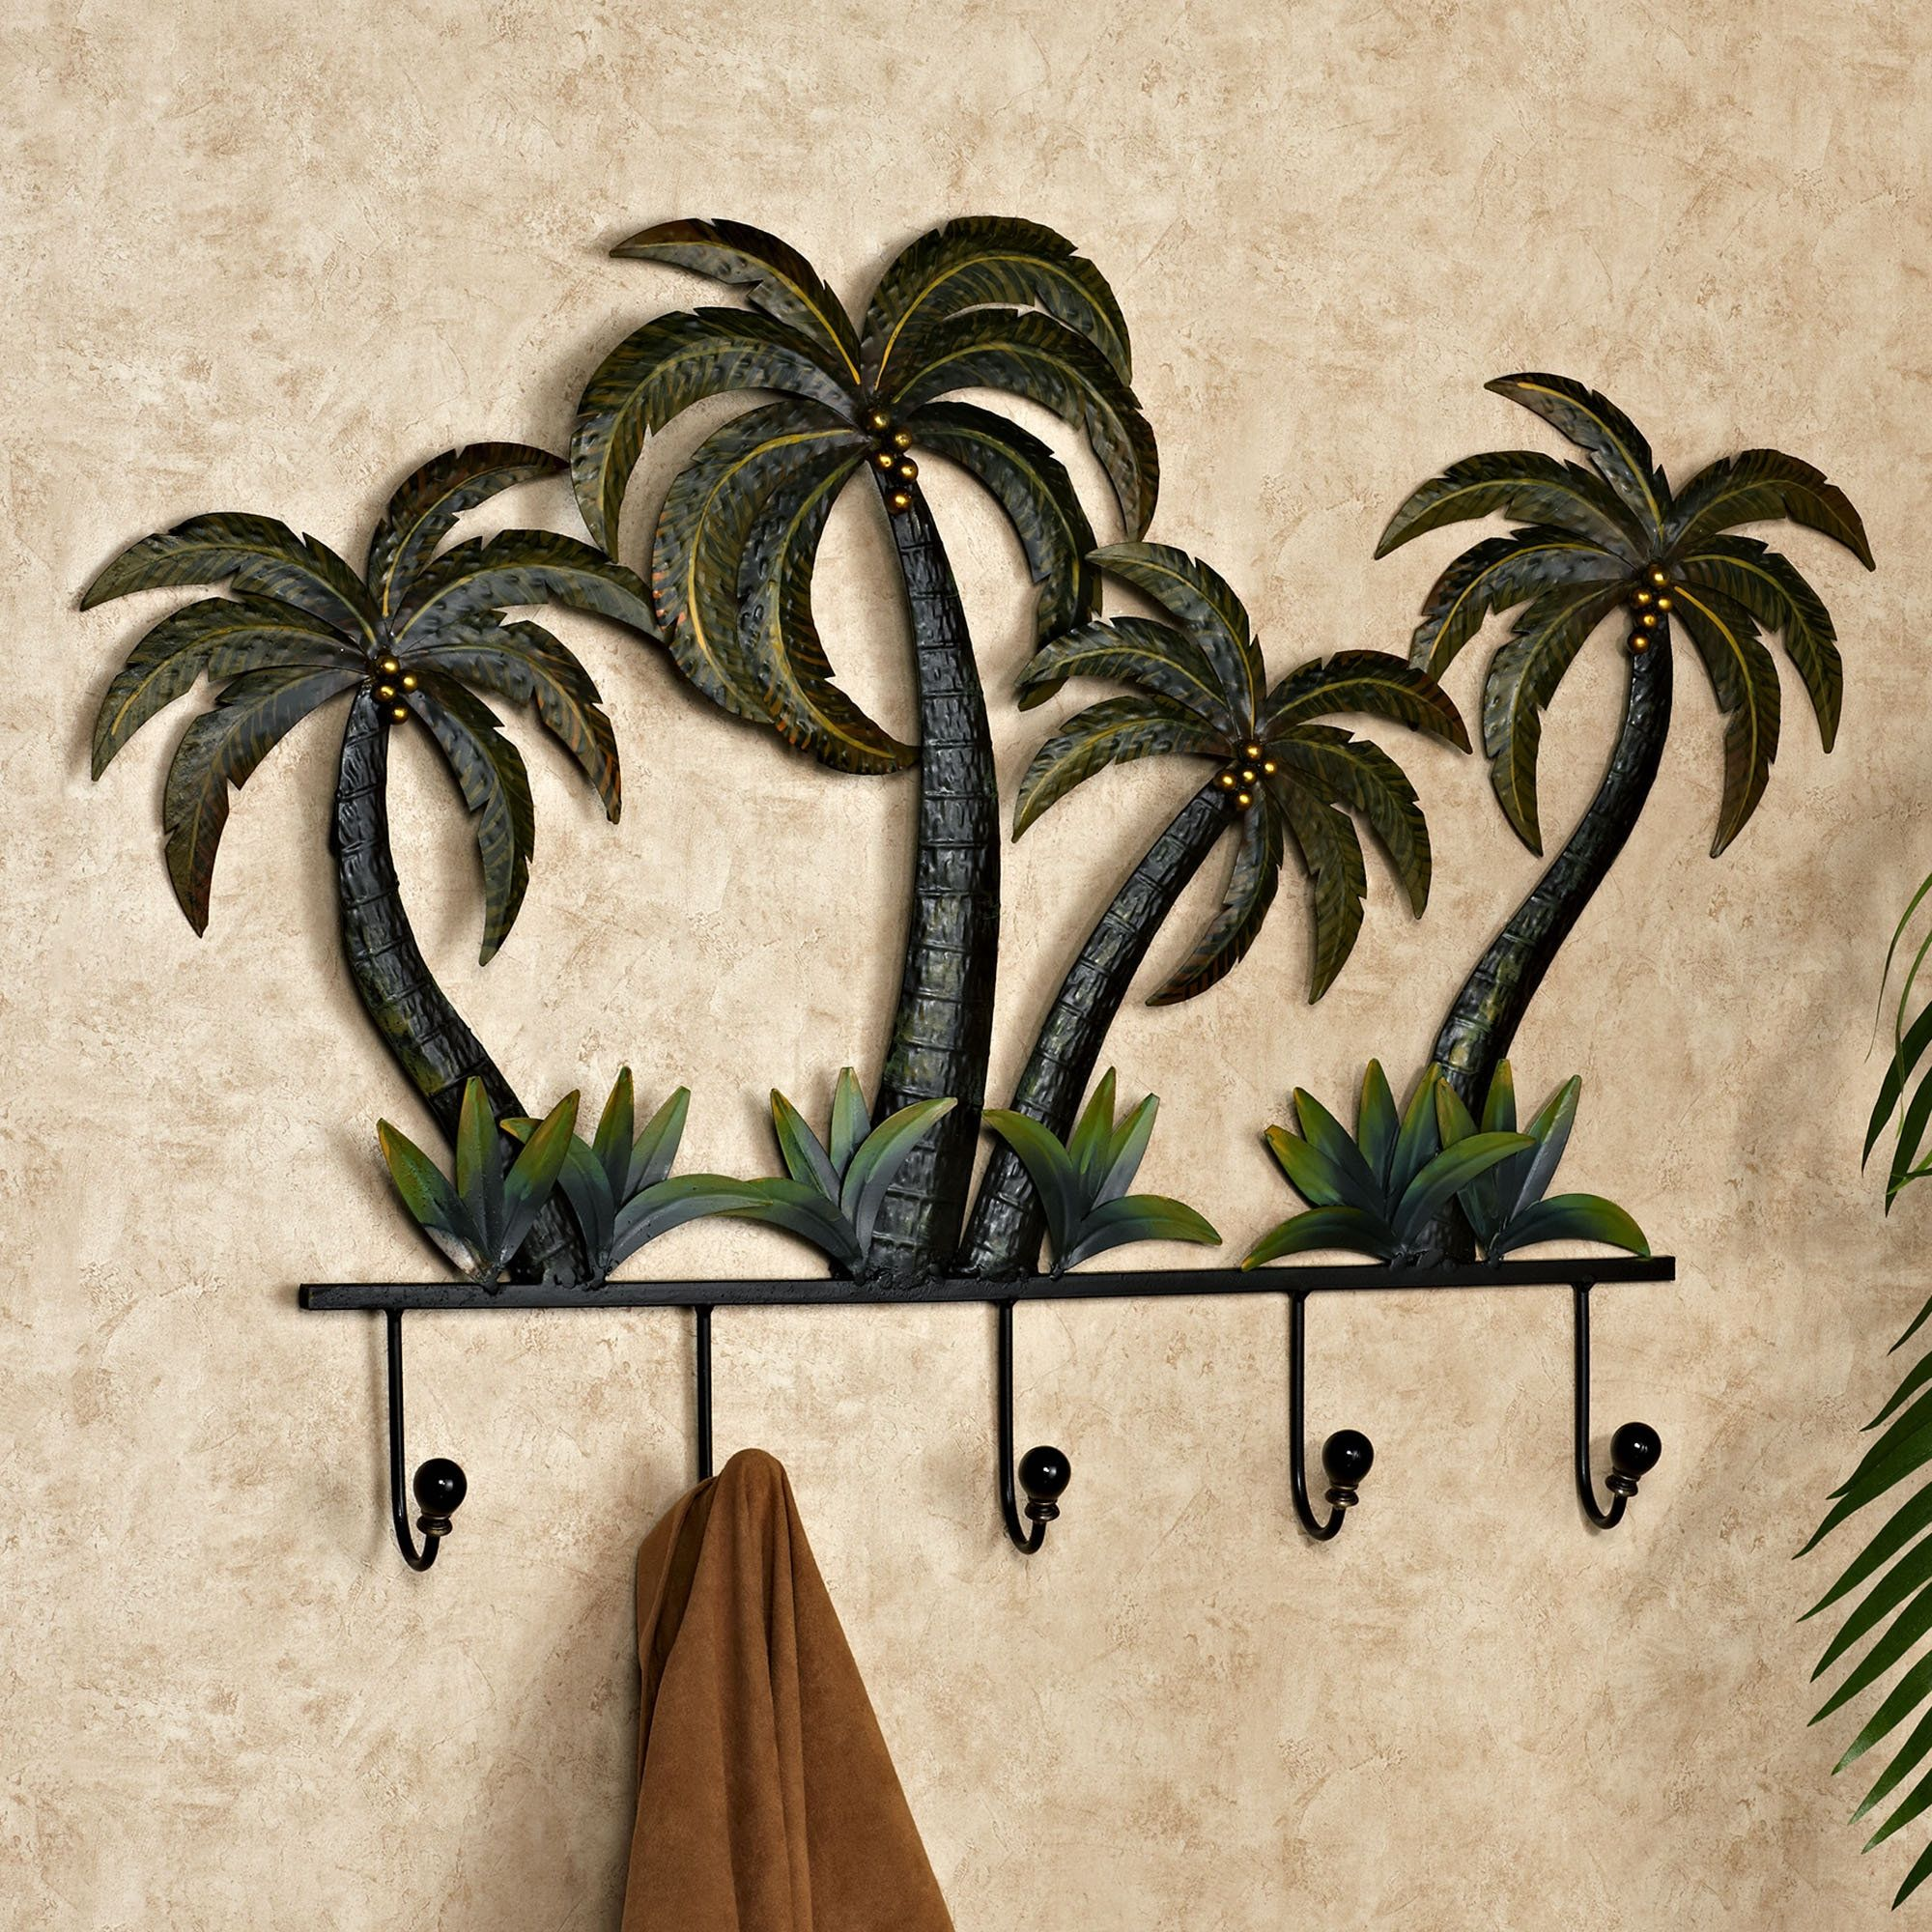 Palm Tree Wall Decor For Bathroom Toilet Can Become One Of The Trickiest Areas Of Your Home T Palm Tree Bathroom Decor Tropical Wall Decor Palm Tree Bathroom